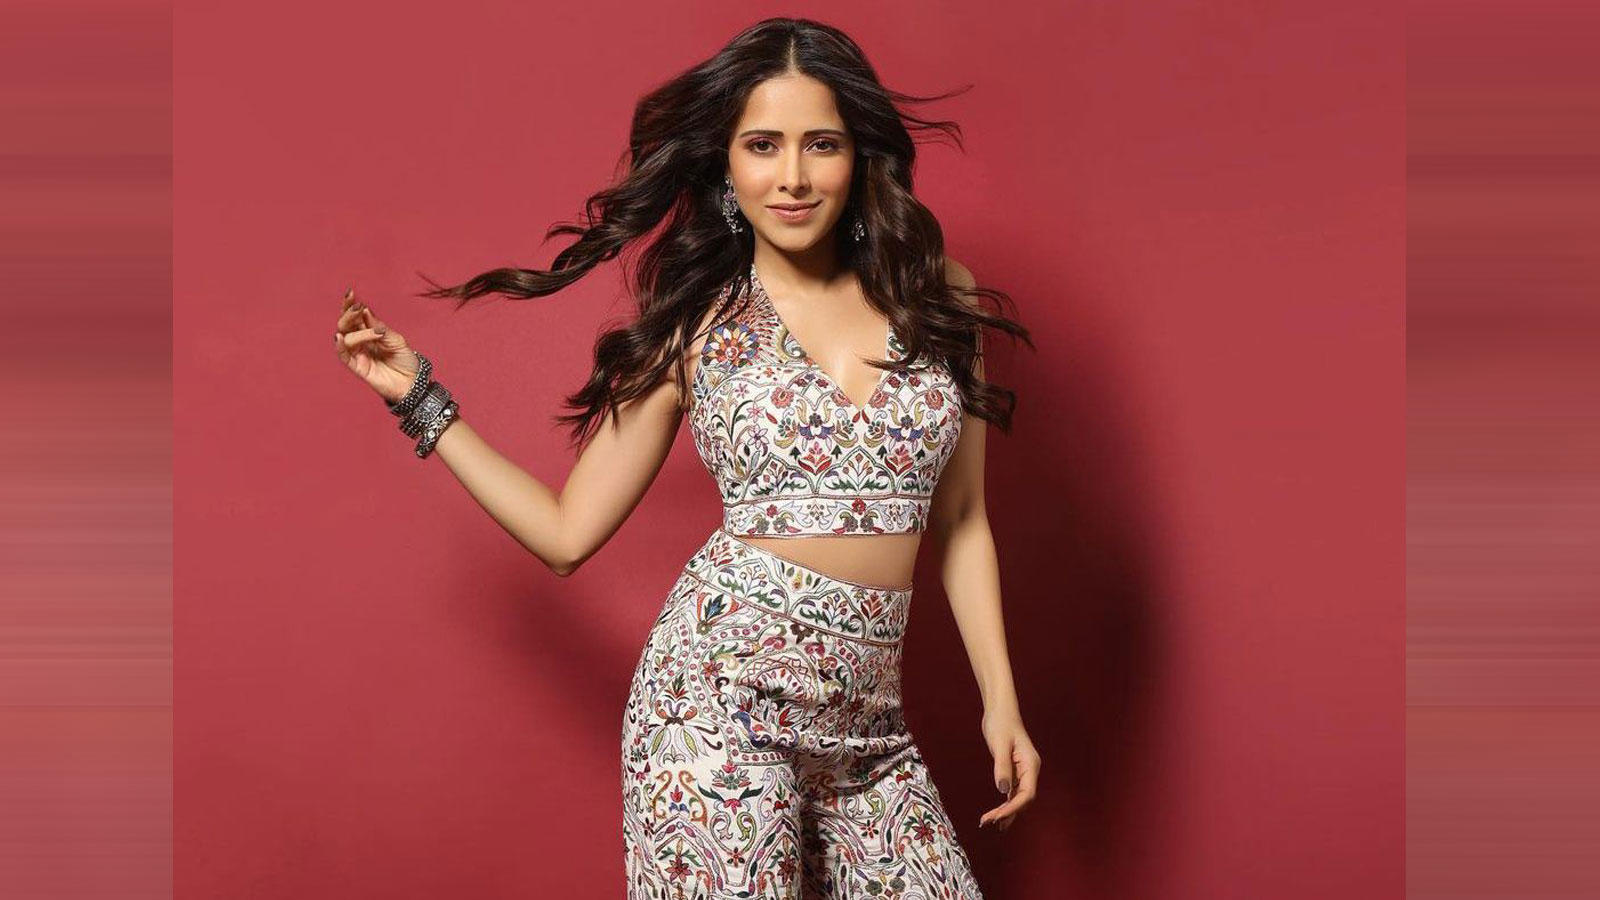 nushrratt-bharuccha-opens-up-on-the-right-guy-that-shes-looking-for